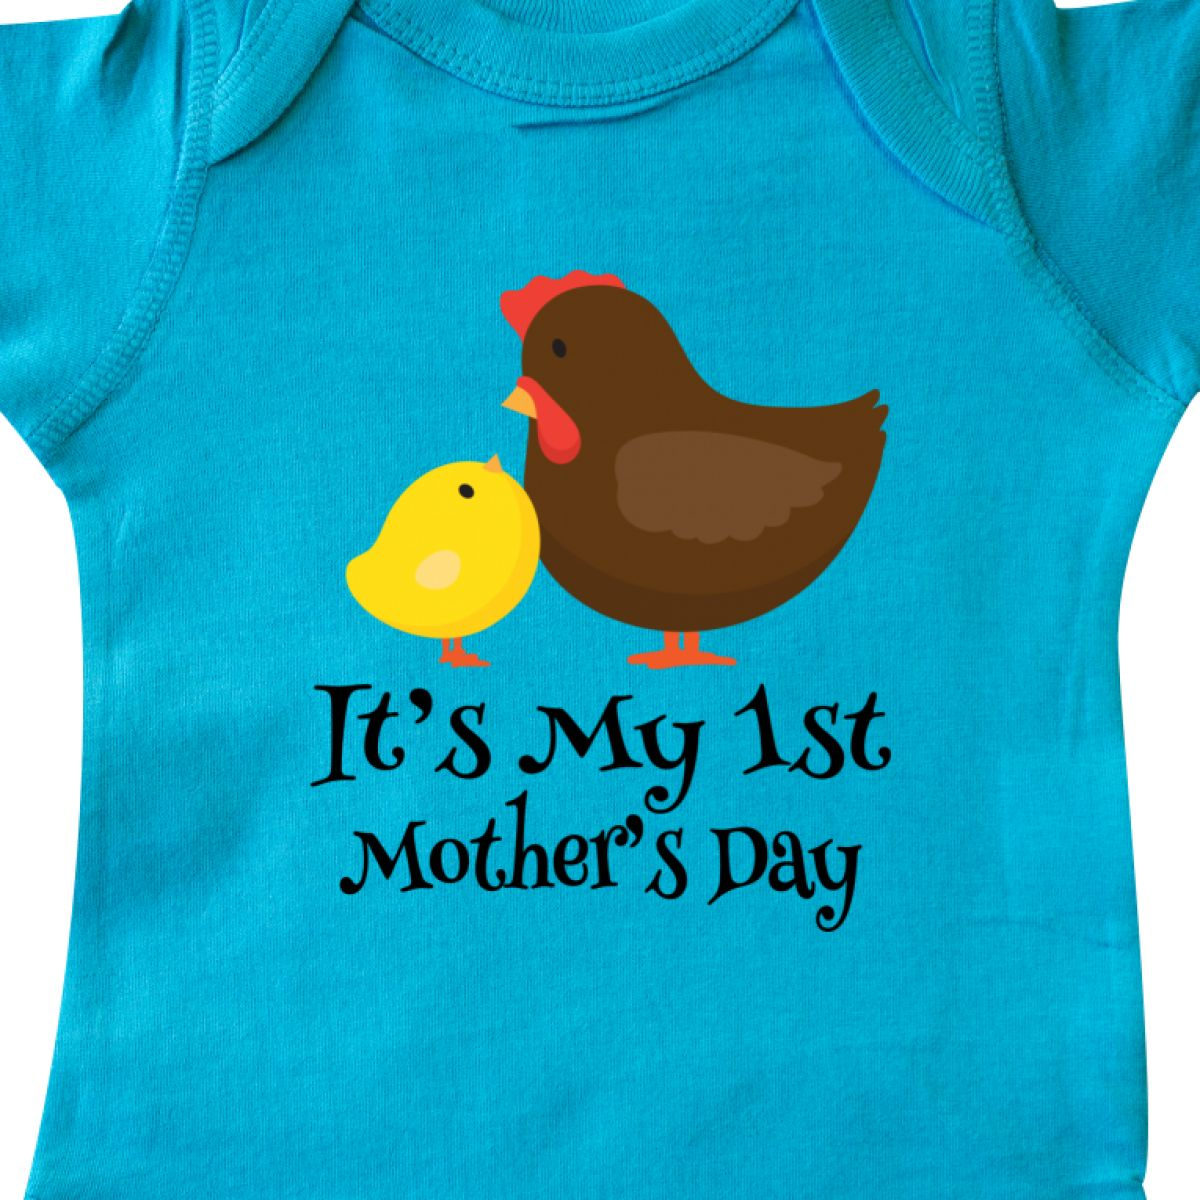 094a41d0e Inktastic 1st Mothers Day Outfit Boy Girl Infant Bodysuit First ...